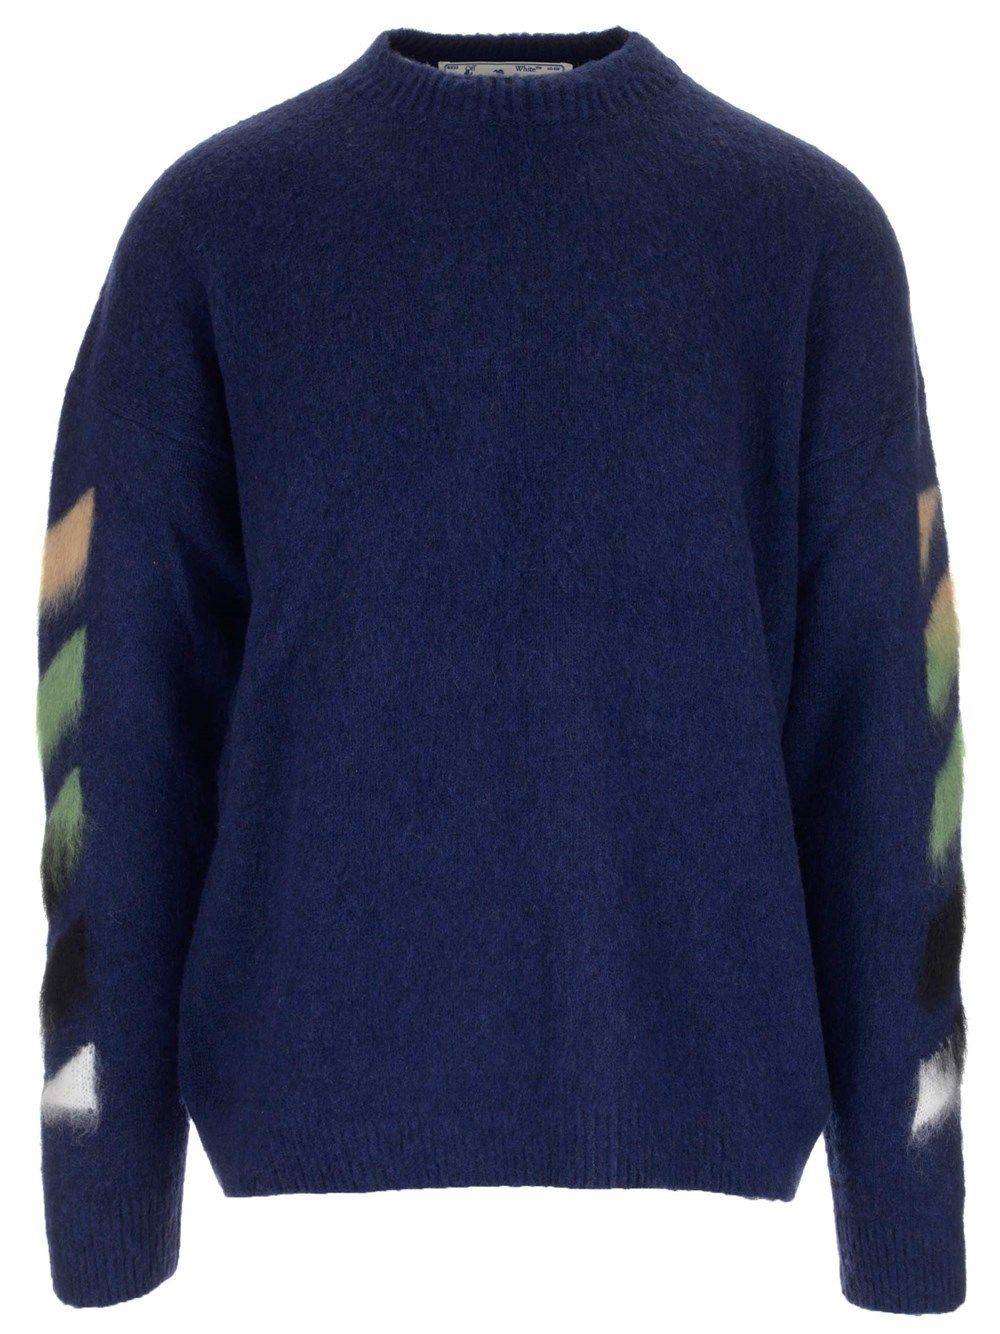 Off-White OFF-WHITE MEN'S OMHA036R21KNI0014984 BLUE OTHER MATERIALS SWEATER